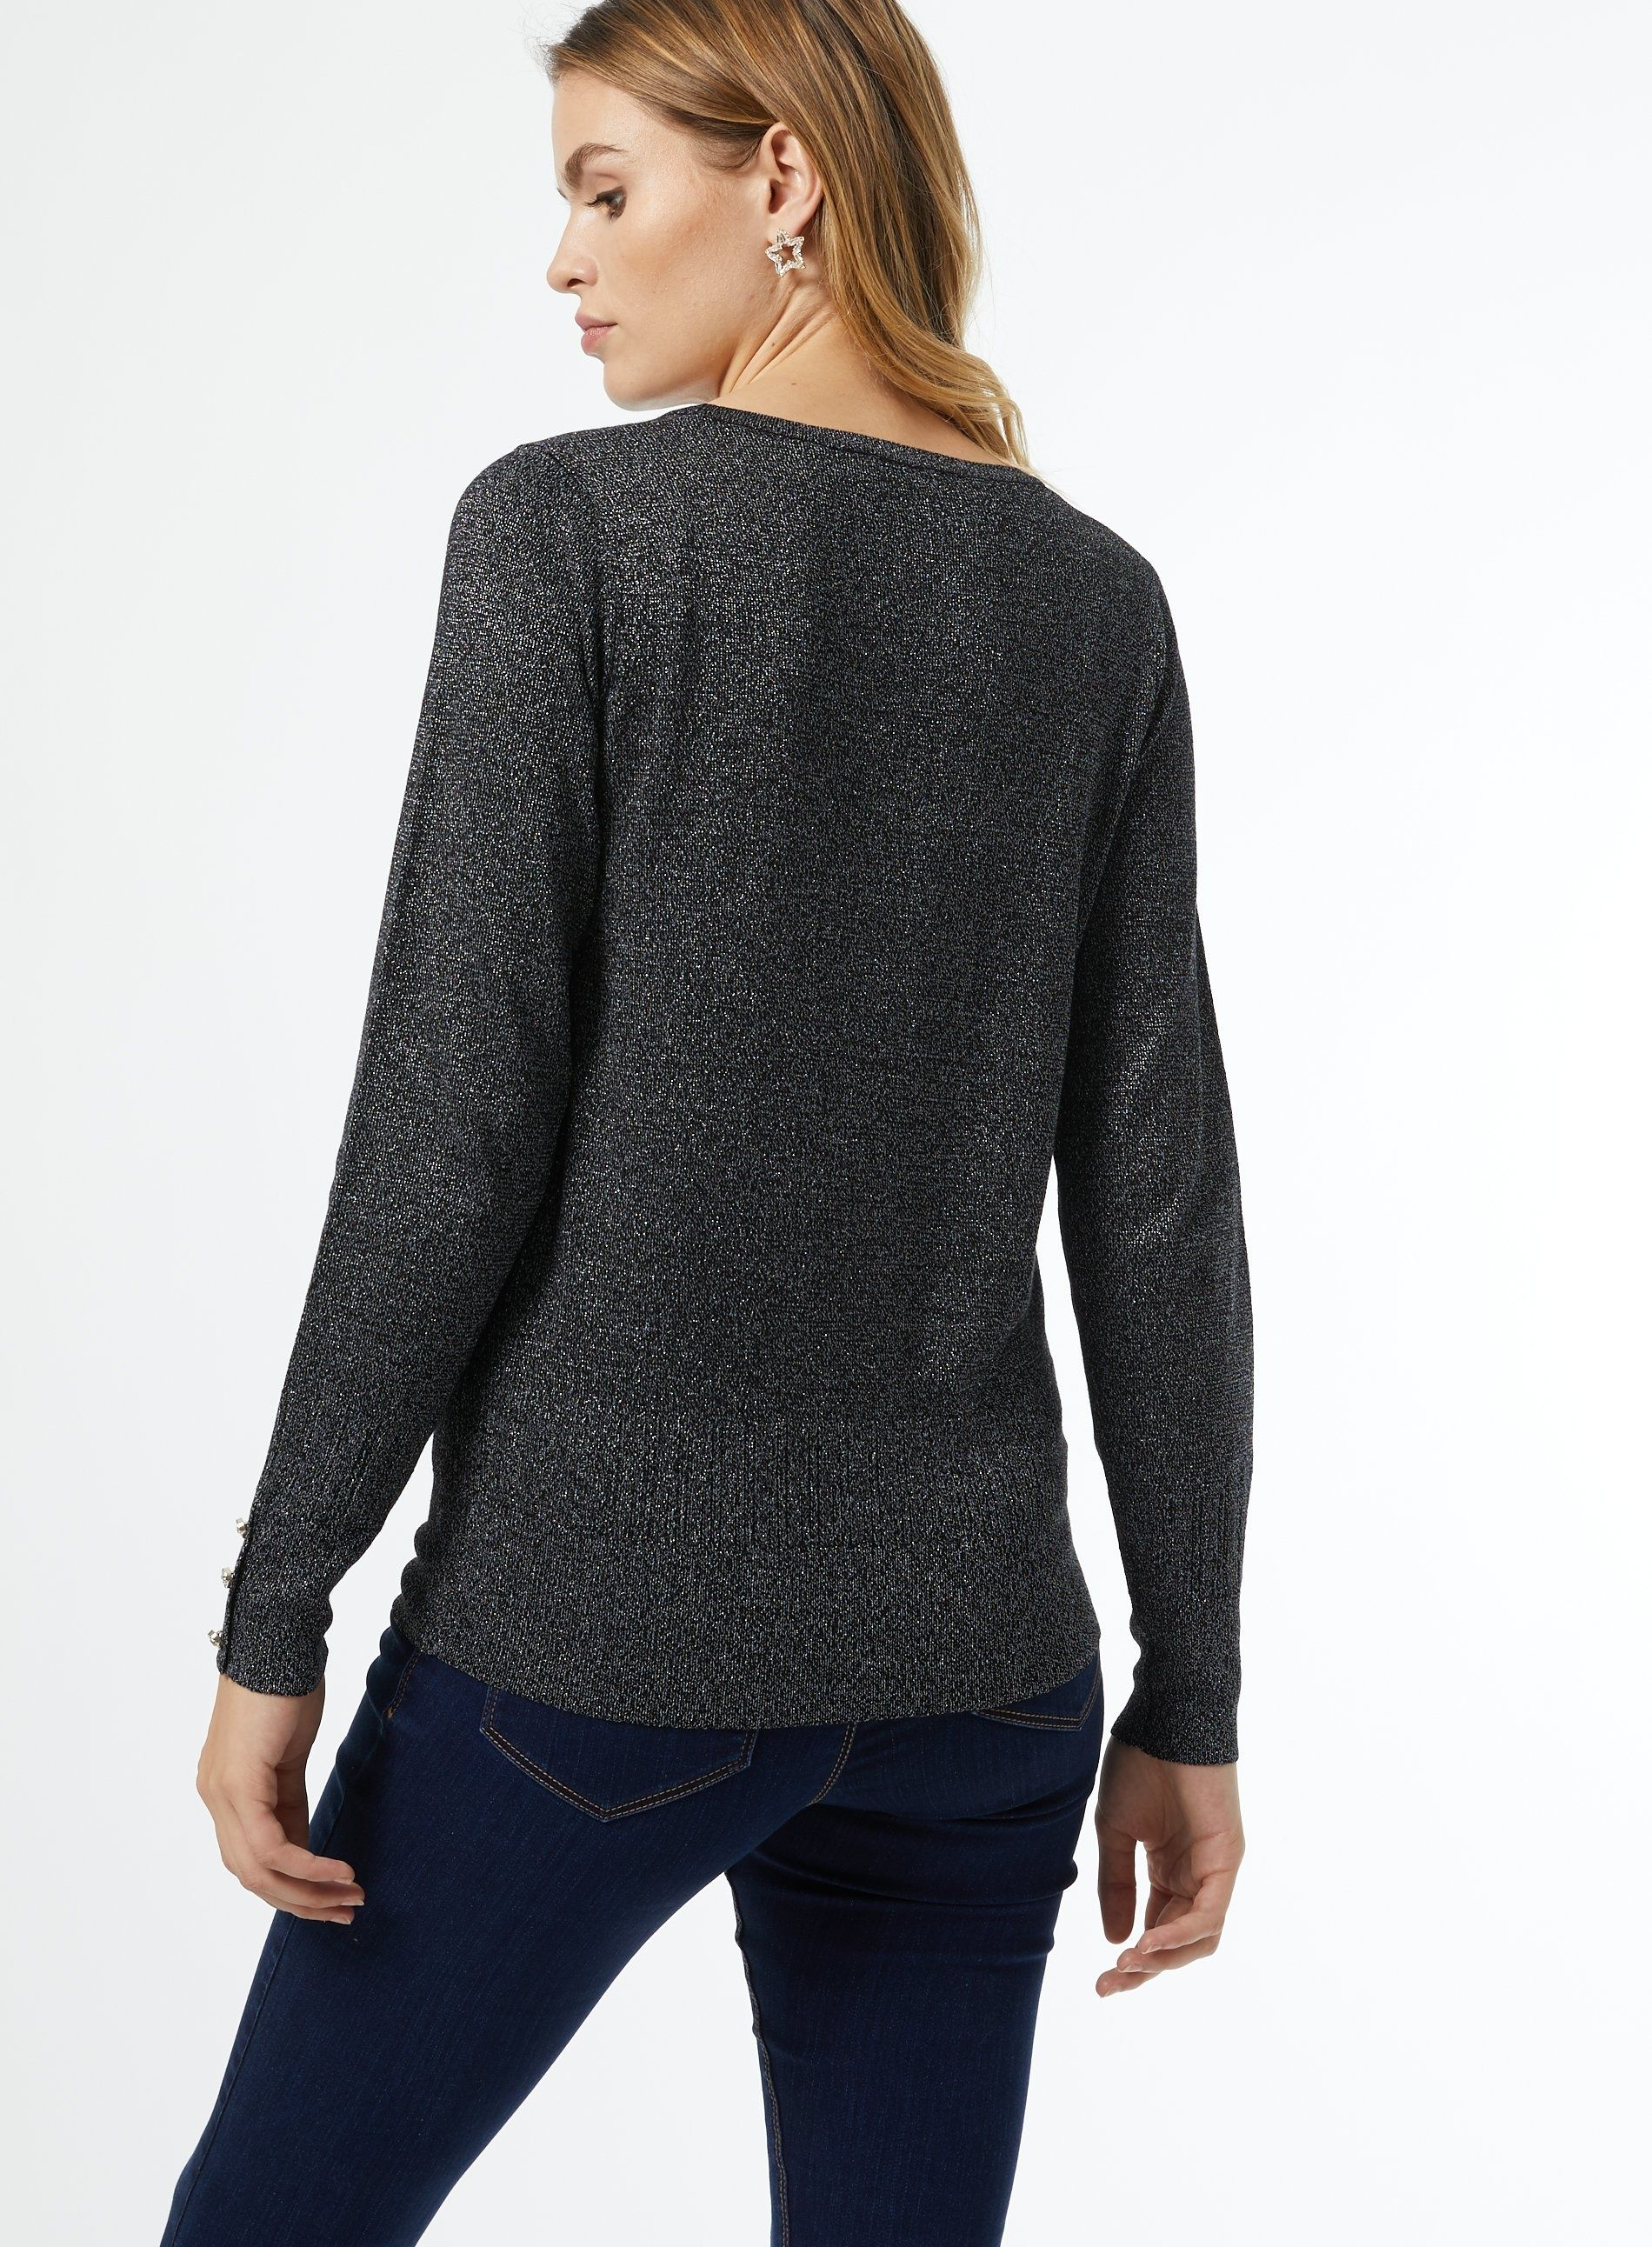 Dorothy Perkins Womens Pewter Lurex Crew Neck Jumper Pullover Sweater Top